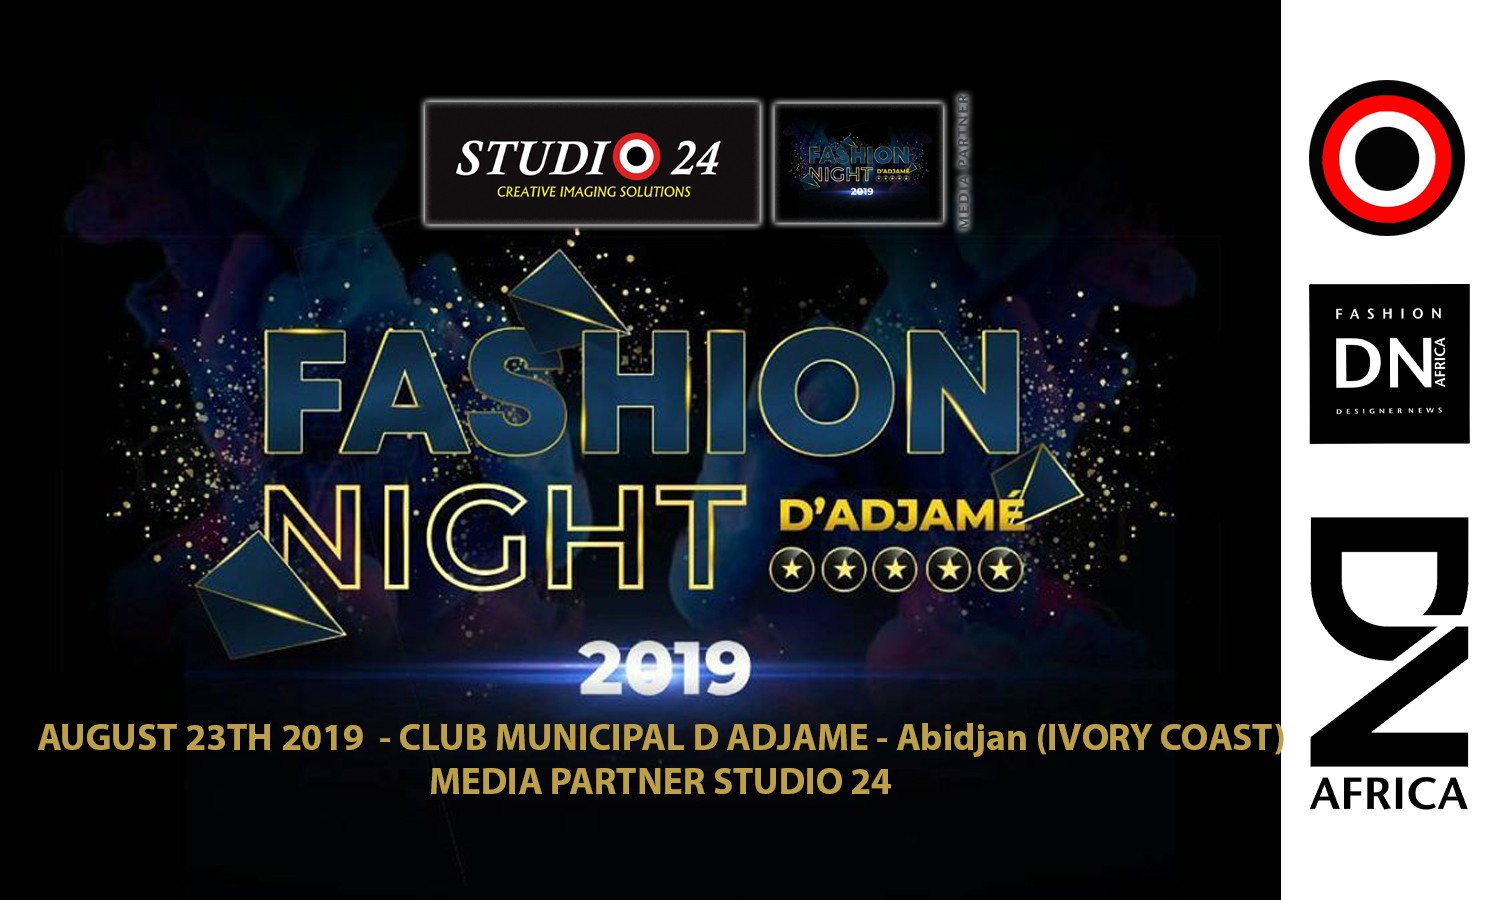 AFRICAN FASHION STYLE MAGAZINE - Fashion Night d'Adjamé 2019 - 5th EDITIONby SOULEY DESIGN - Photographer DAN NGU - Official Media Partner DN AFRICA - STUDIO 24 NIGERIA - STUDIO 24 INTERNATIONAL - Ifeanyi Christopher Oputa MD AND CEO OF COLVI LIMITED AND STUDIO 24 - CHEVEUX CHERIE and CHEVEUX CHERIE STUDIO BY MARIEME DUBOZ- Fashion Editor Nahomie NOOR COULIBALY